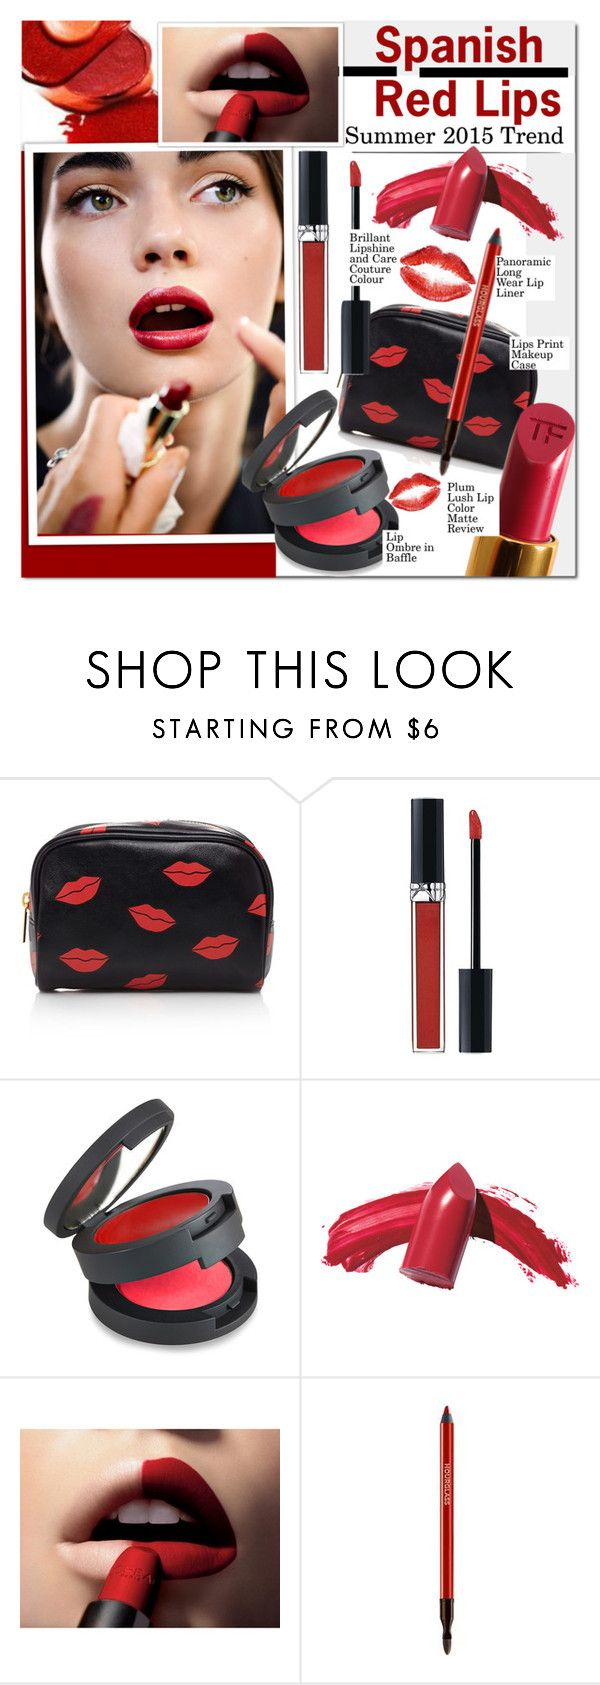 """""""Spanish Red Lips"""" by barbarela11 ❤ liked on Polyvore featuring beauty, Forever 21, Christian Dior, Dolce&Gabbana, Topshop, Elizabeth Arden and L'Oréal Paris"""